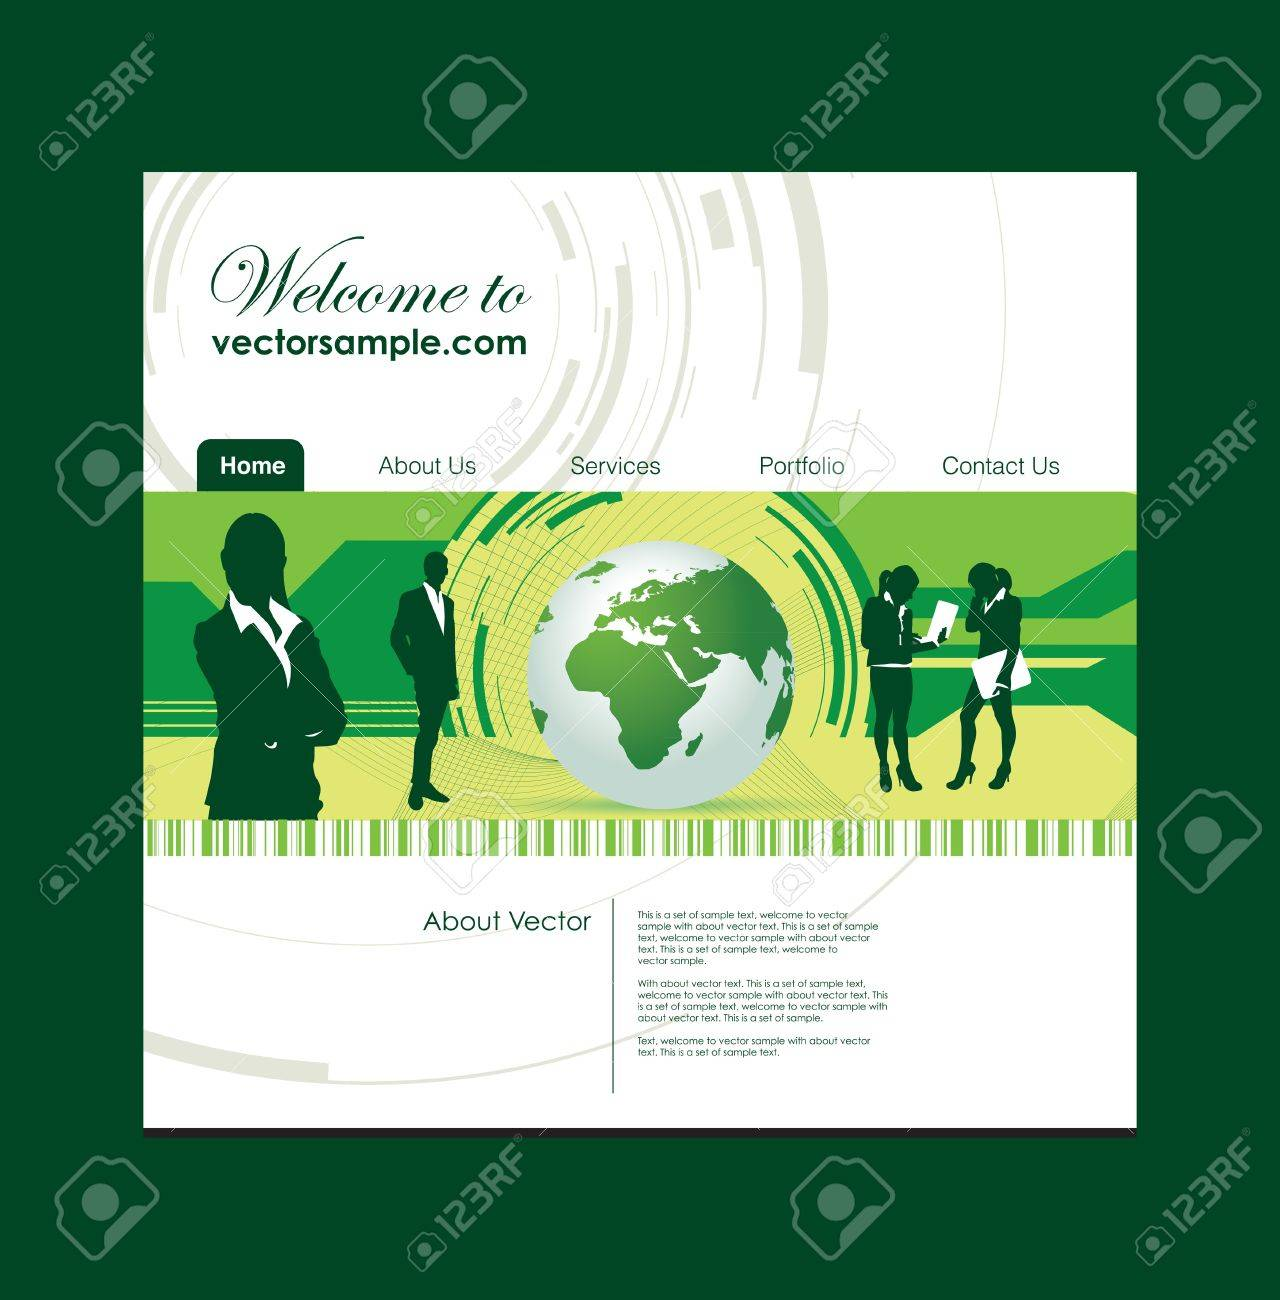 people and world website background Stock Vector - 10037628